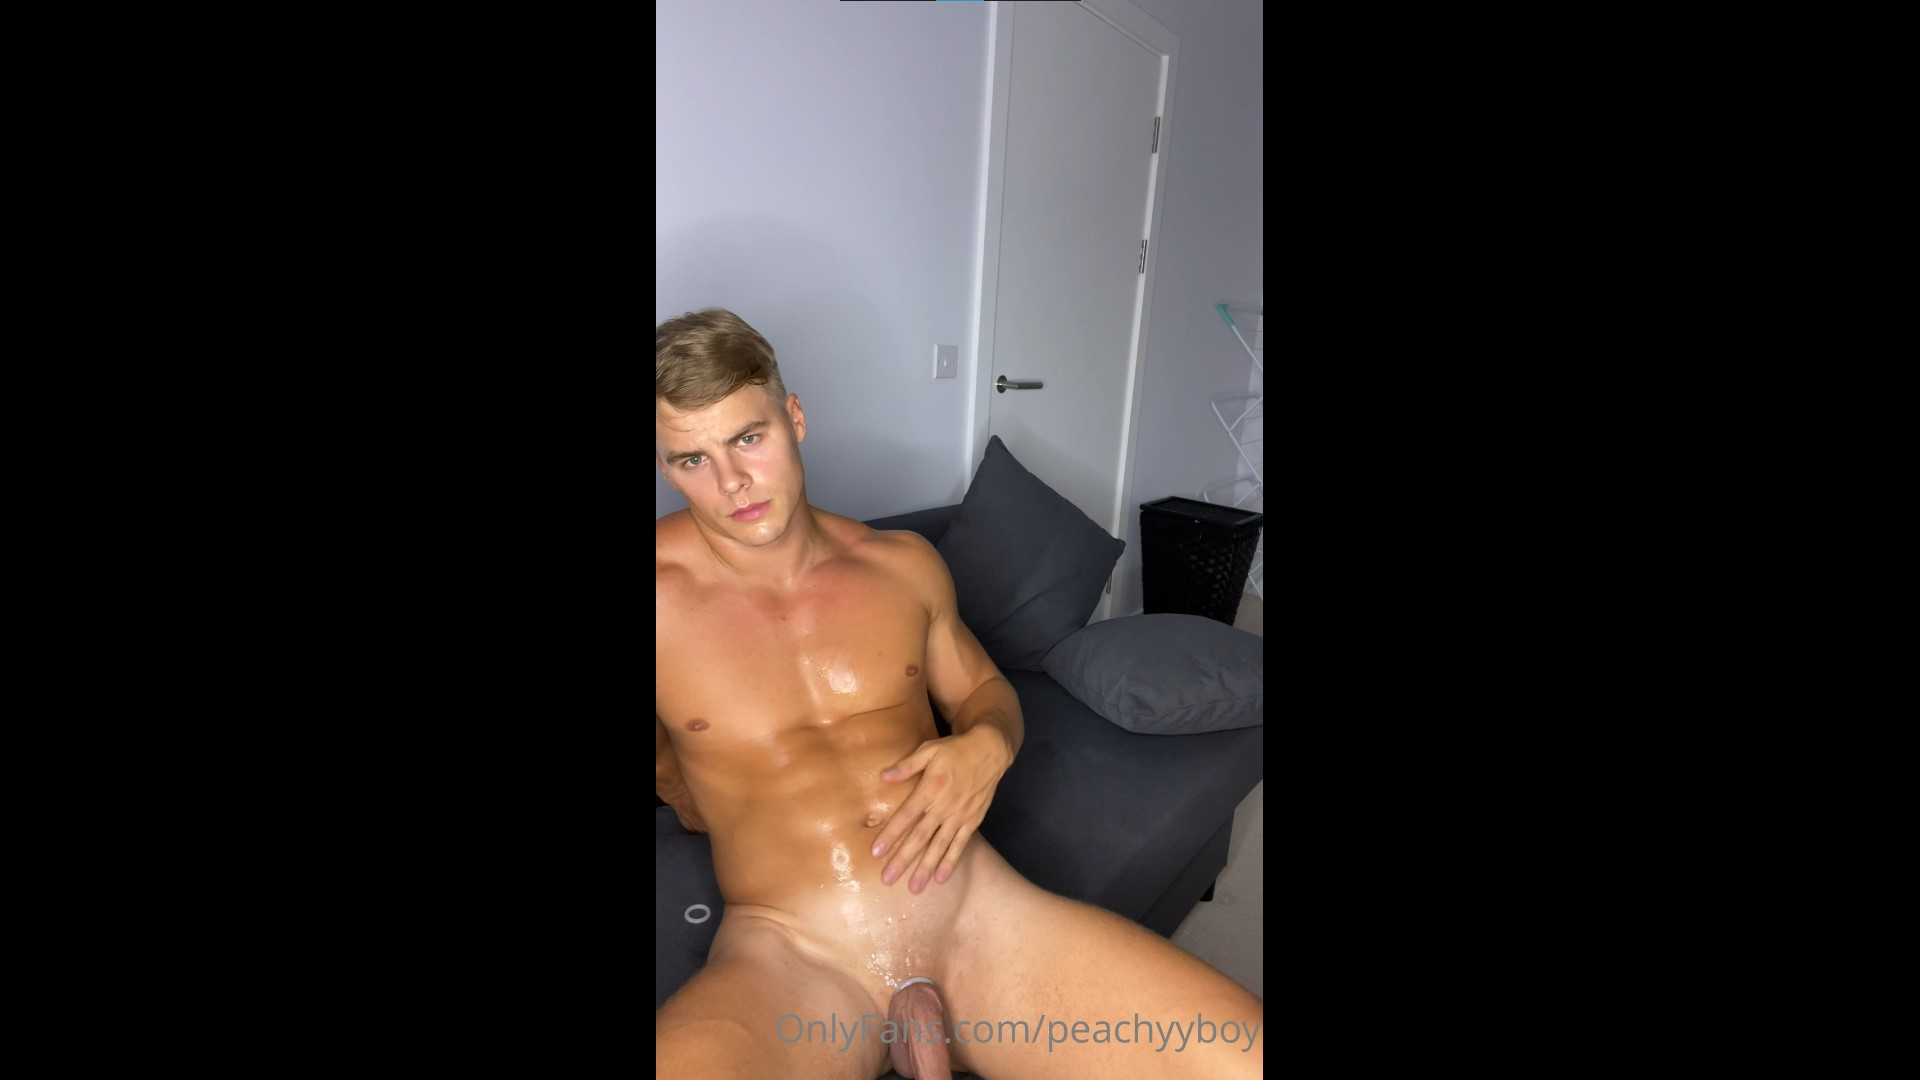 Slowly stripping and jerking off till I cum over my abs - Peachy Boy